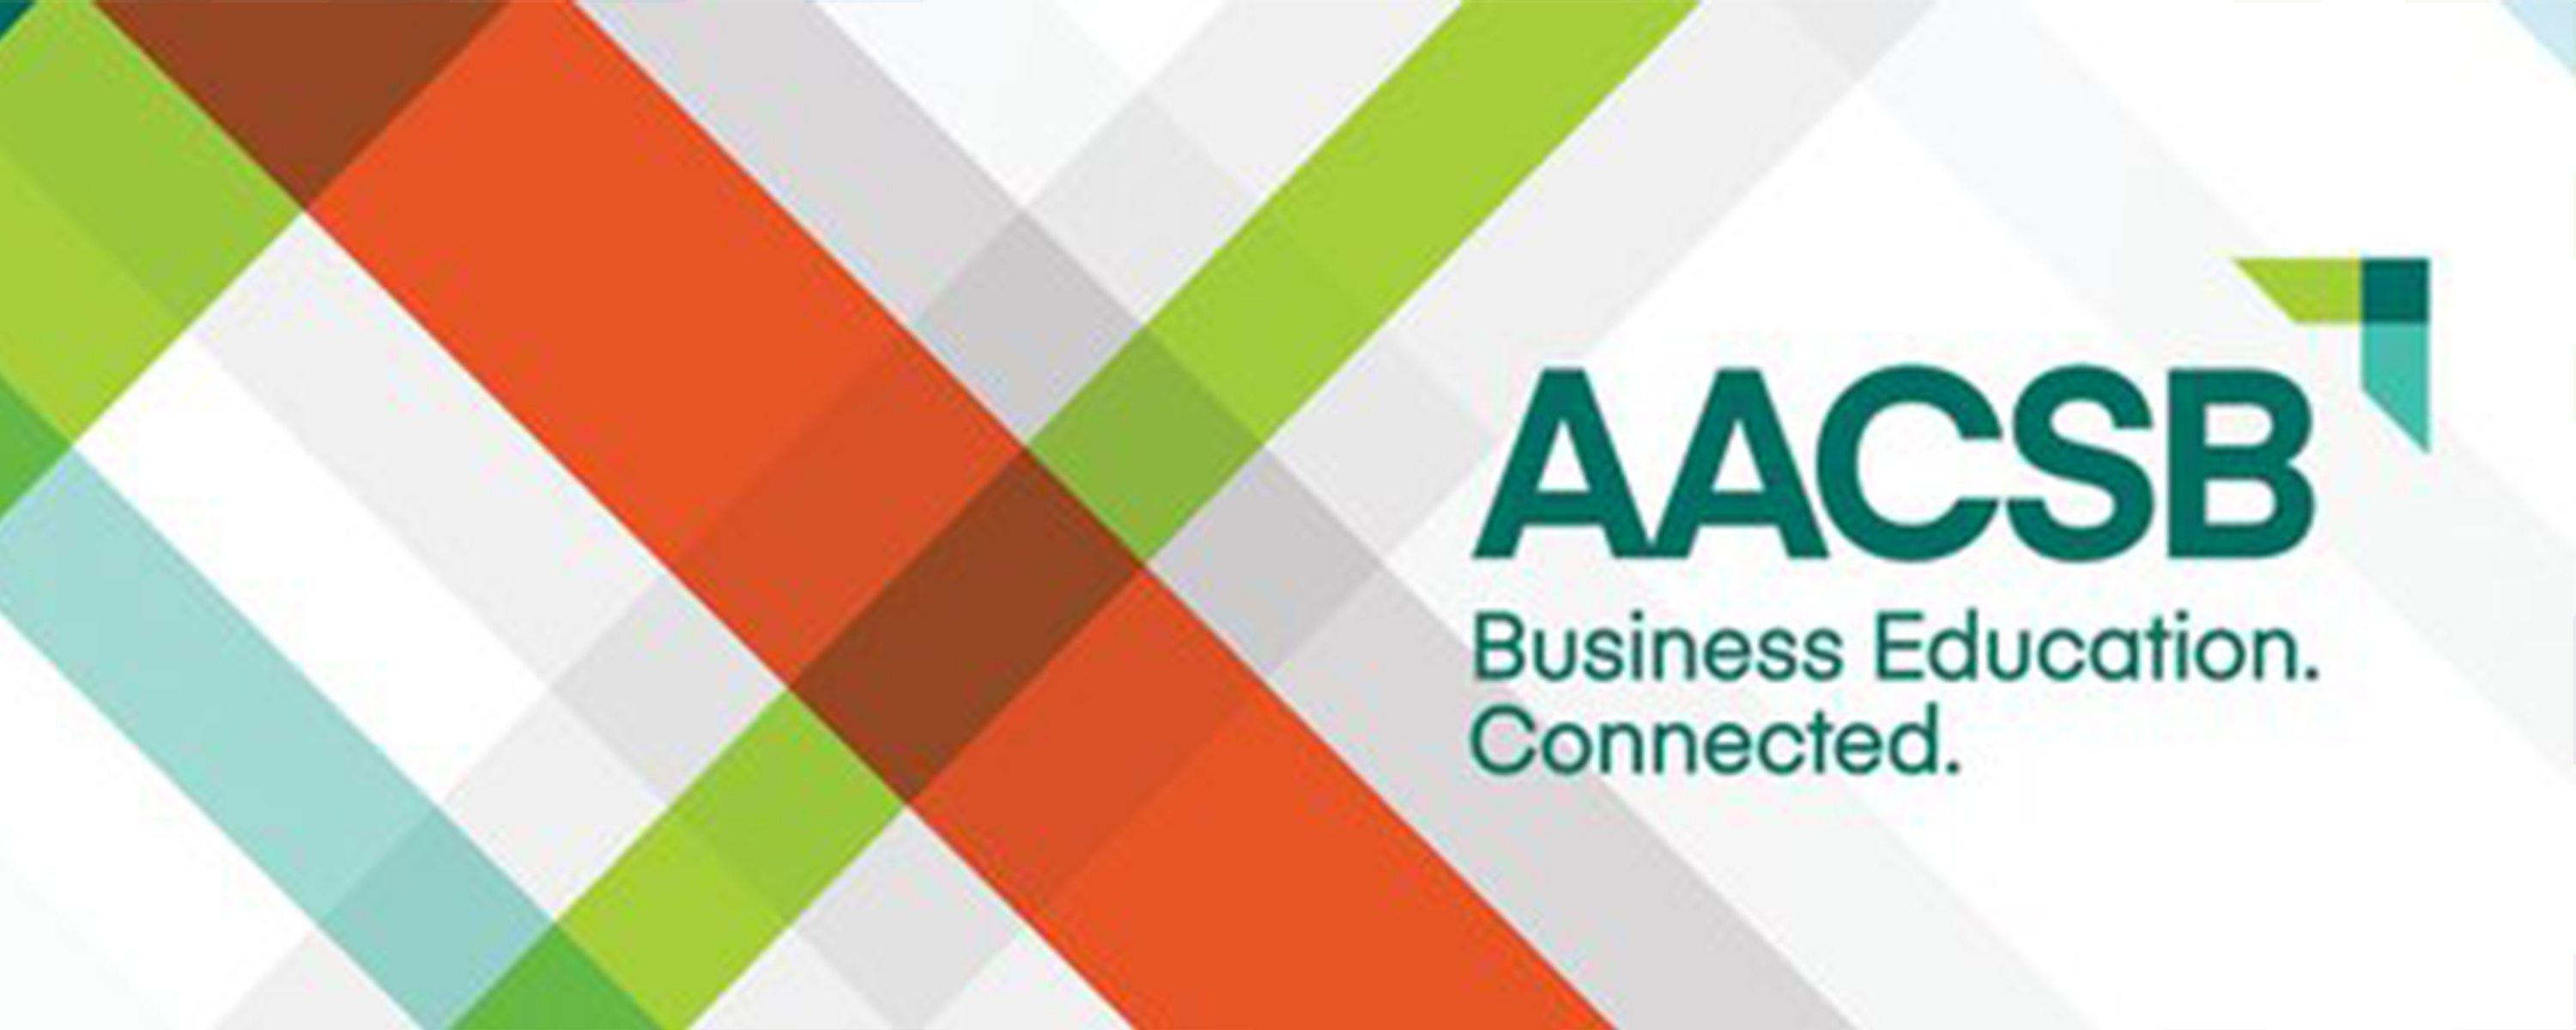 1500x600_AACSB Feb 2021_Event Banner@2x